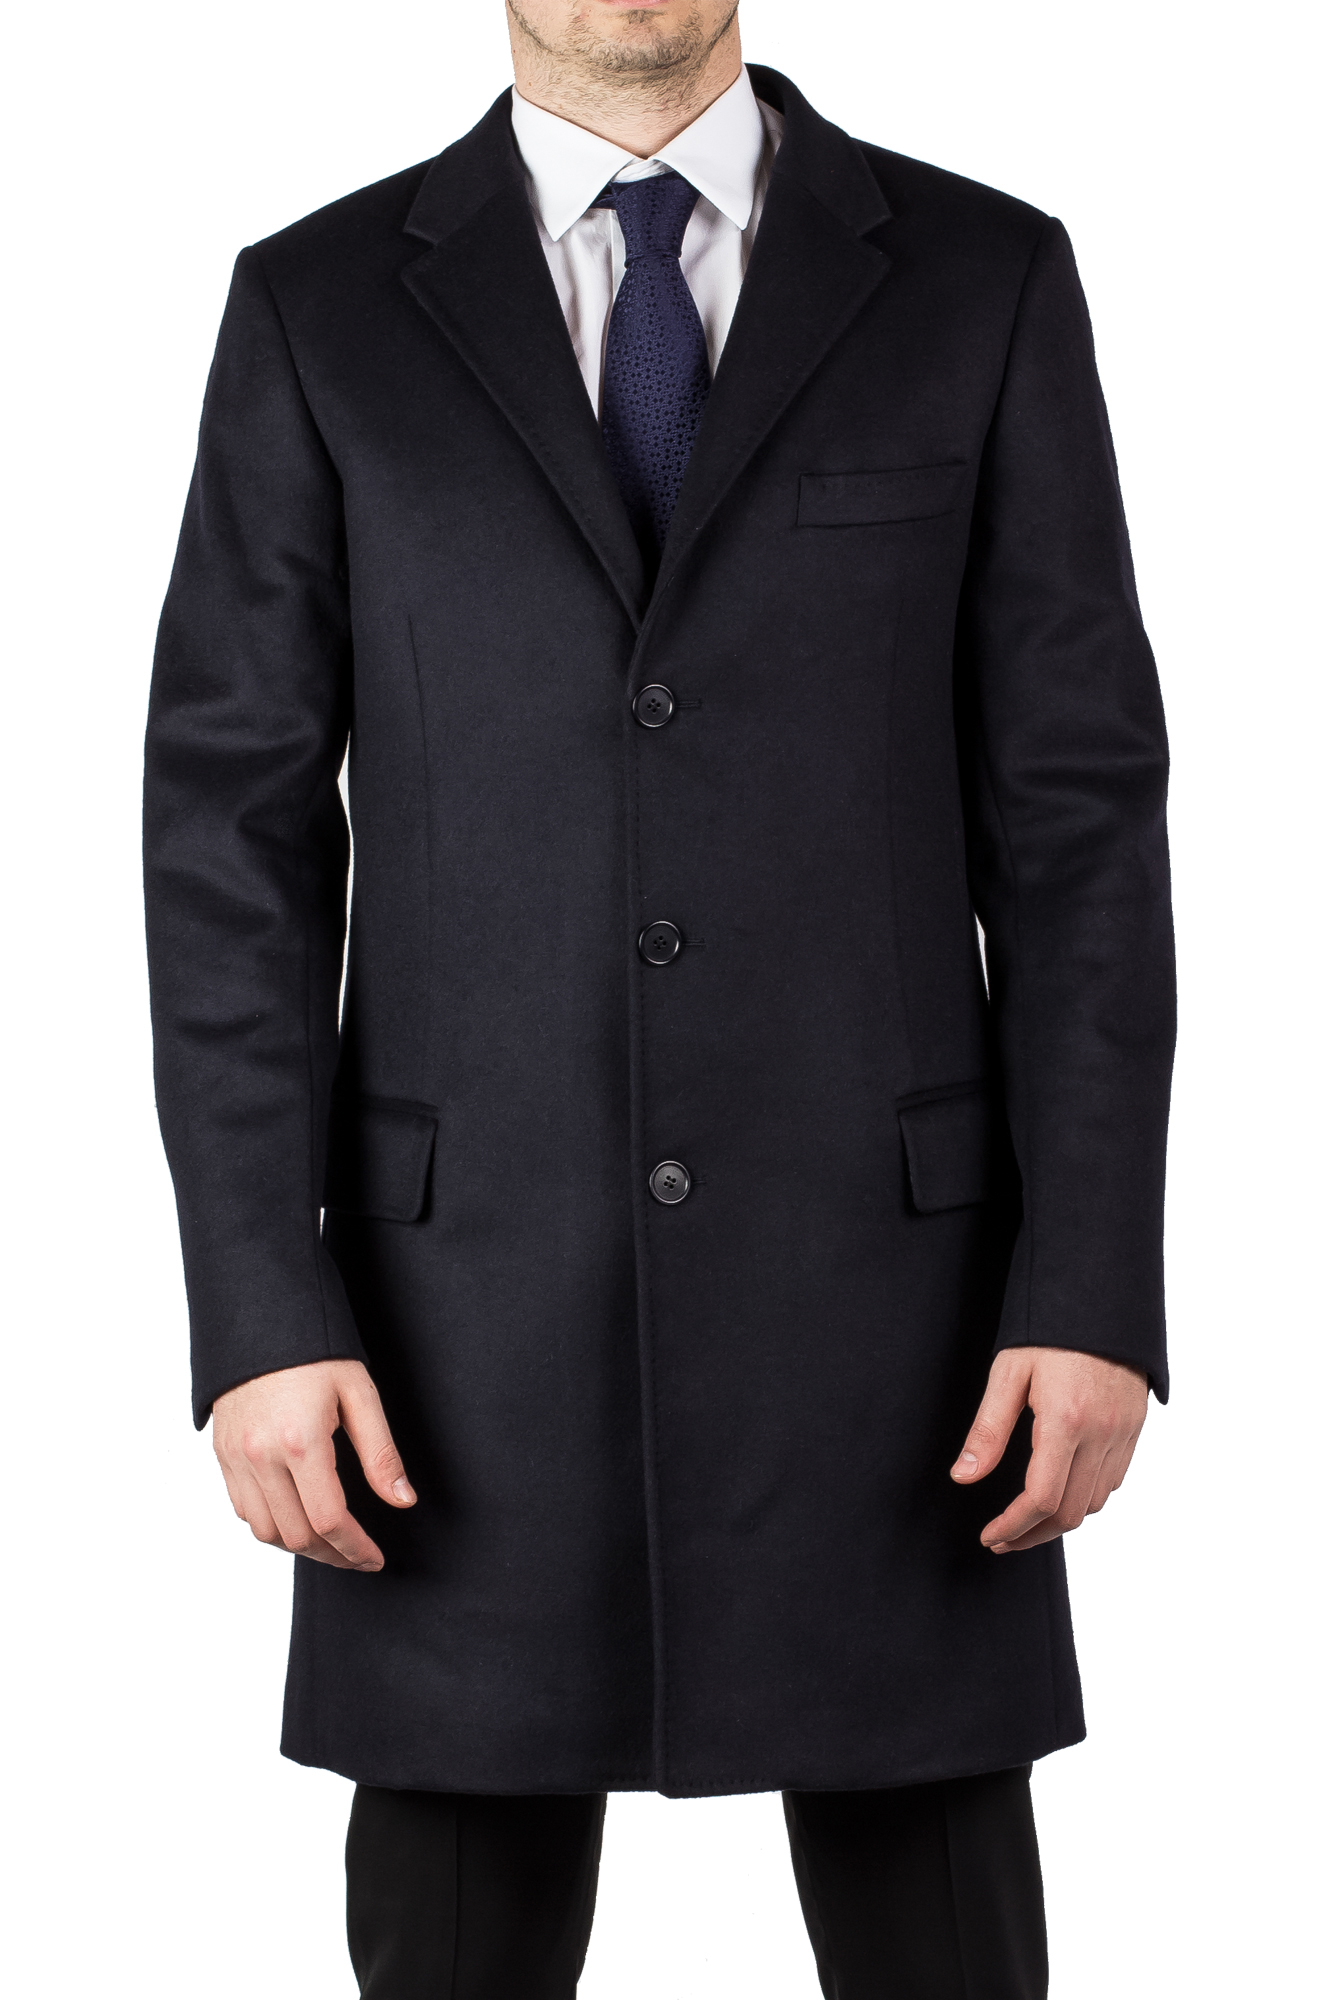 Luciano Barbera Men's Wool Cashmere 3 4 Length Coat Jacket Navy Blue by Luciano Barbera